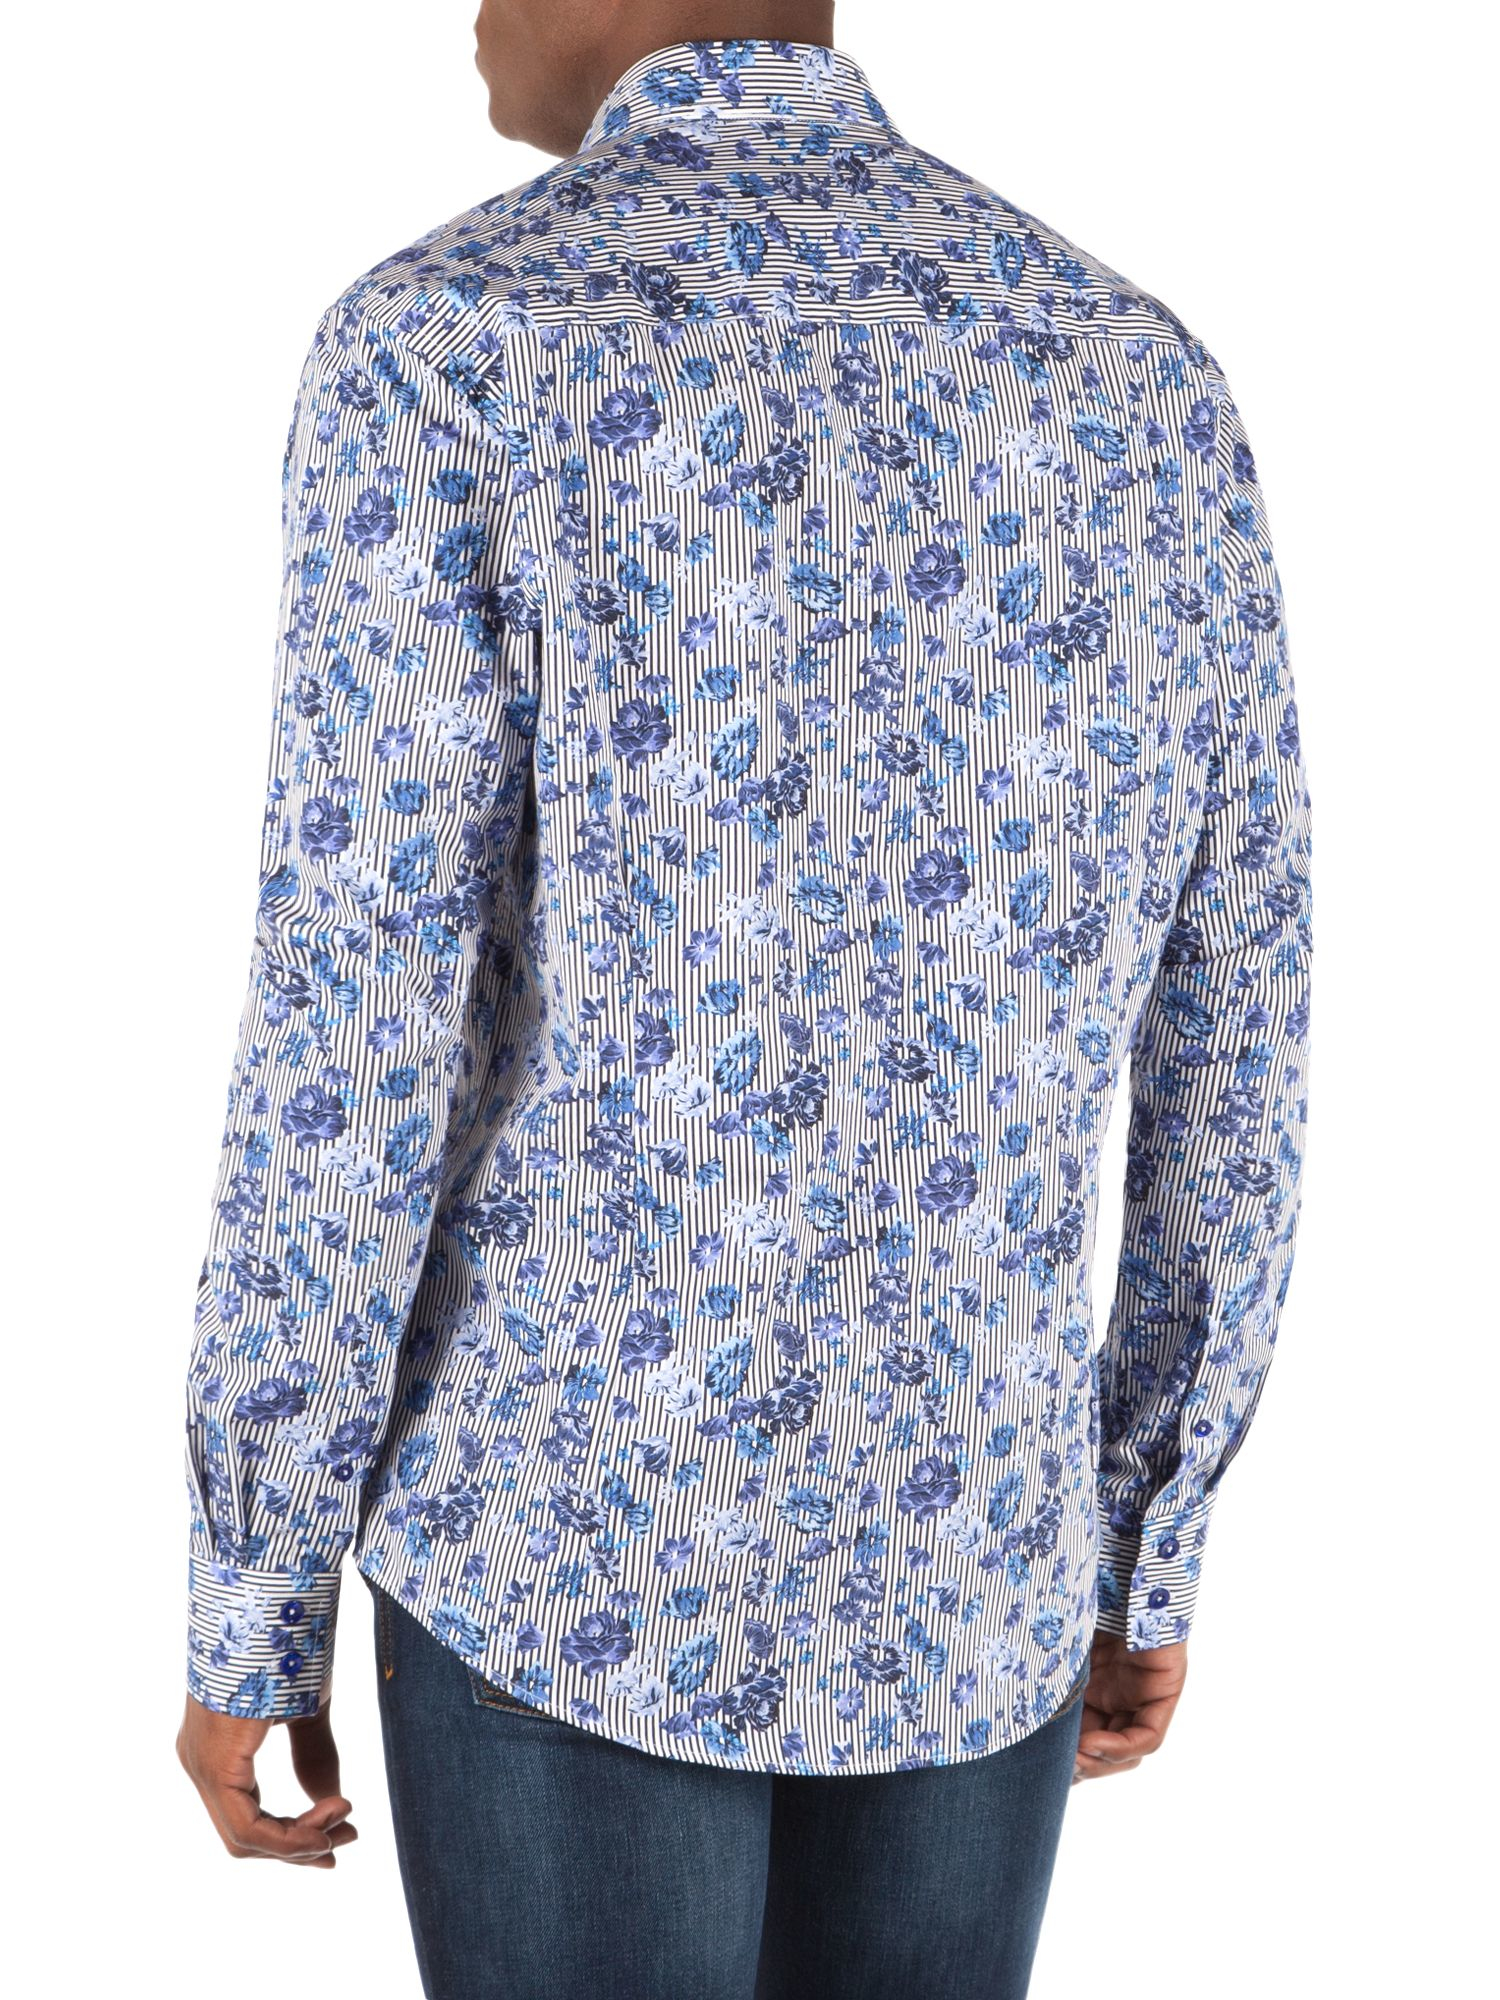 Lyst English Laundry Rose Print Sport Shirt In Blue For Men